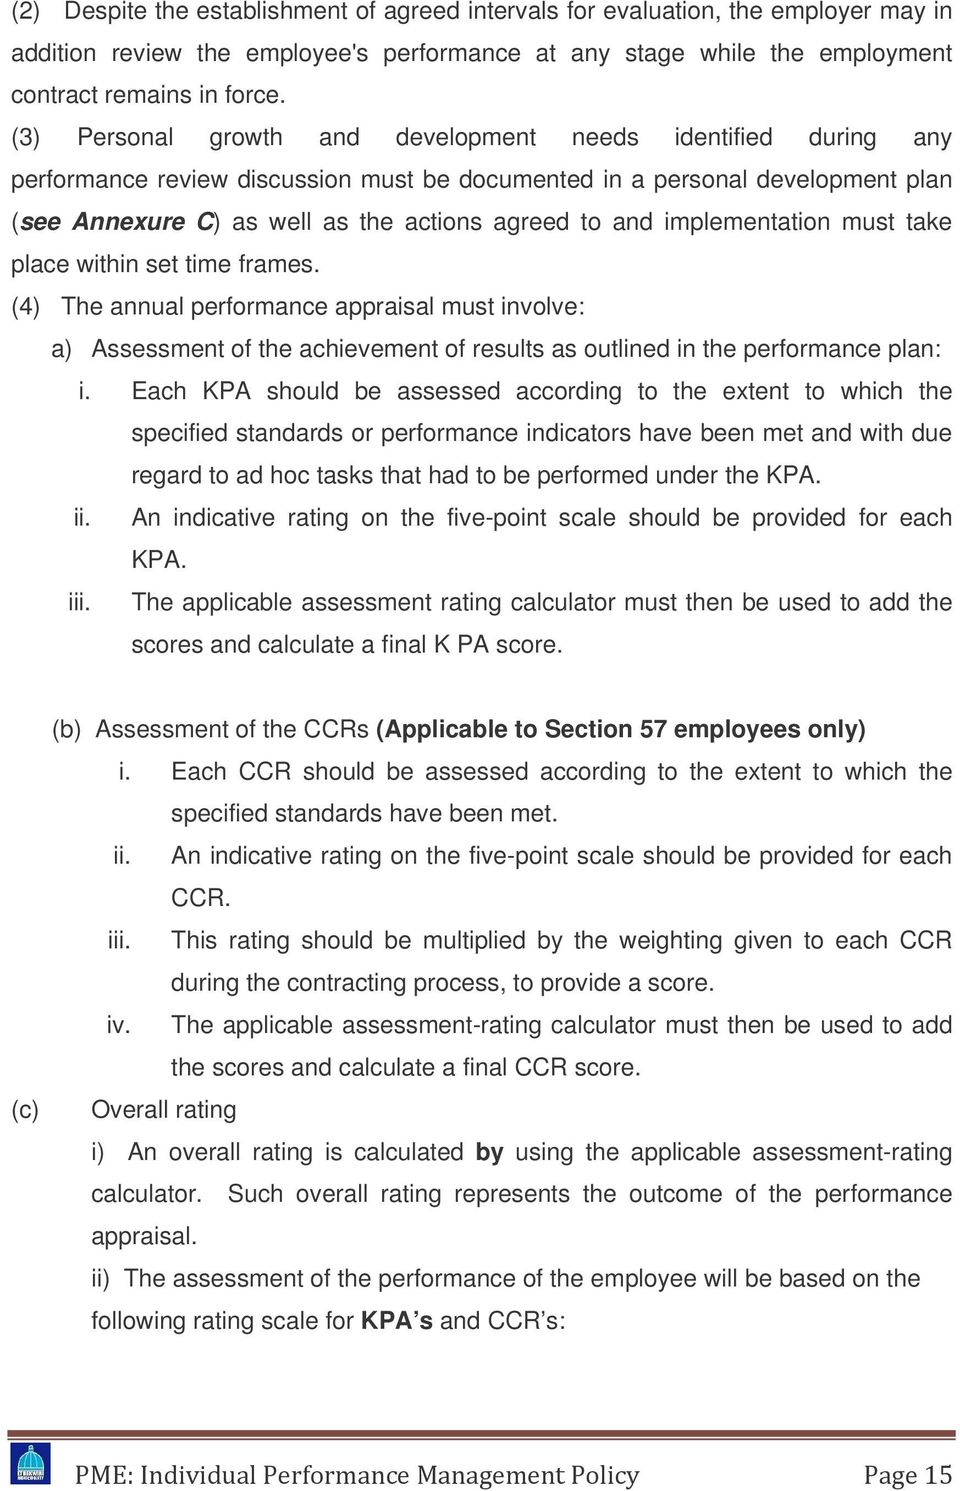 implementation must take place within set time frames. (4) The annual performance appraisal must involve: a) Assessment of the achievement of results as outlined in the performance plan: i.